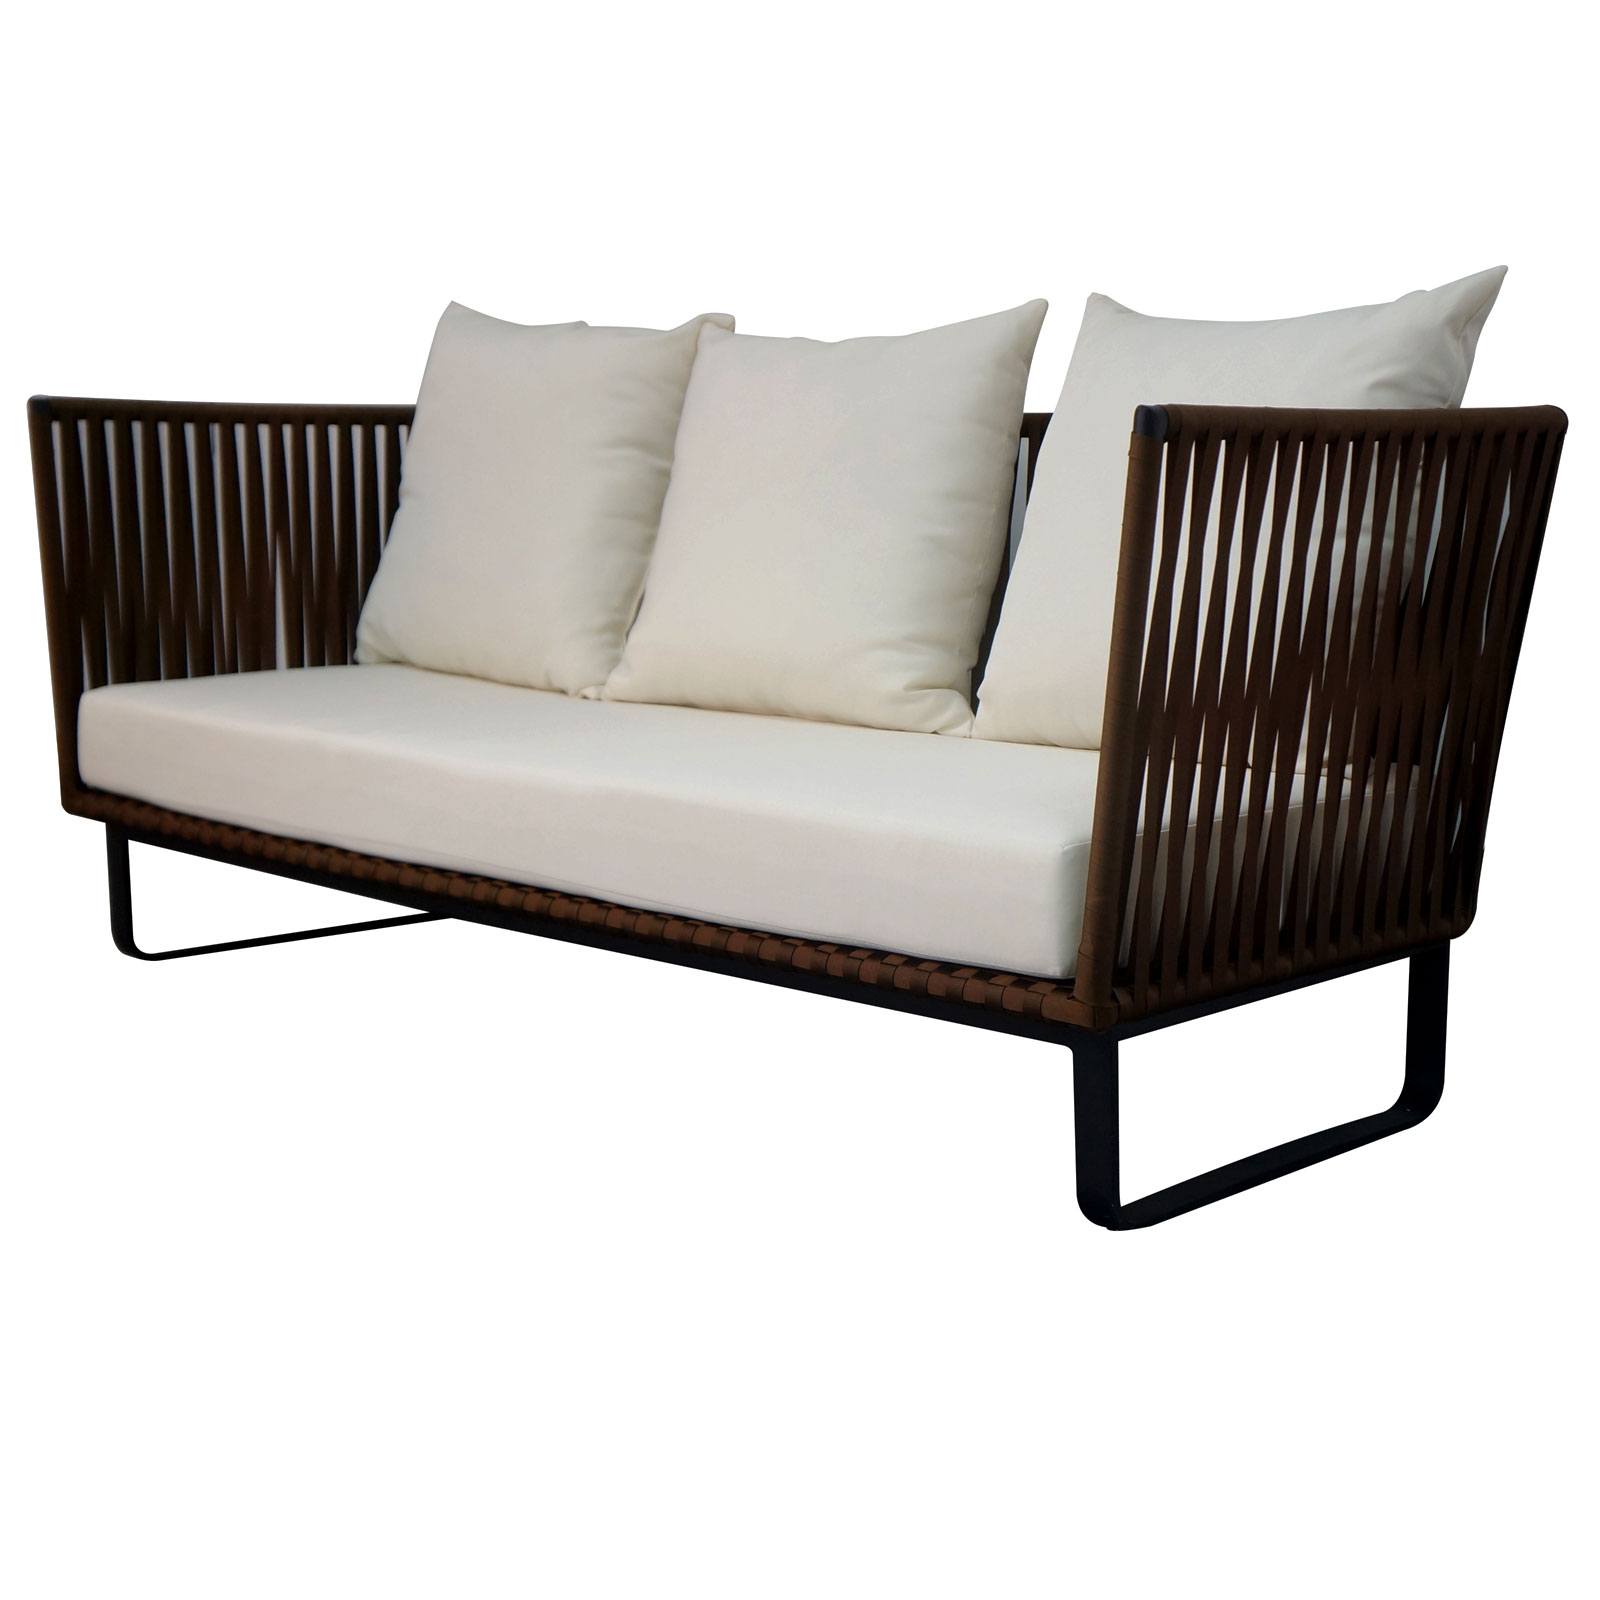 Incredible Outdoor Sofa Rentals Event Furniture Rental Delivery Download Free Architecture Designs Jebrpmadebymaigaardcom